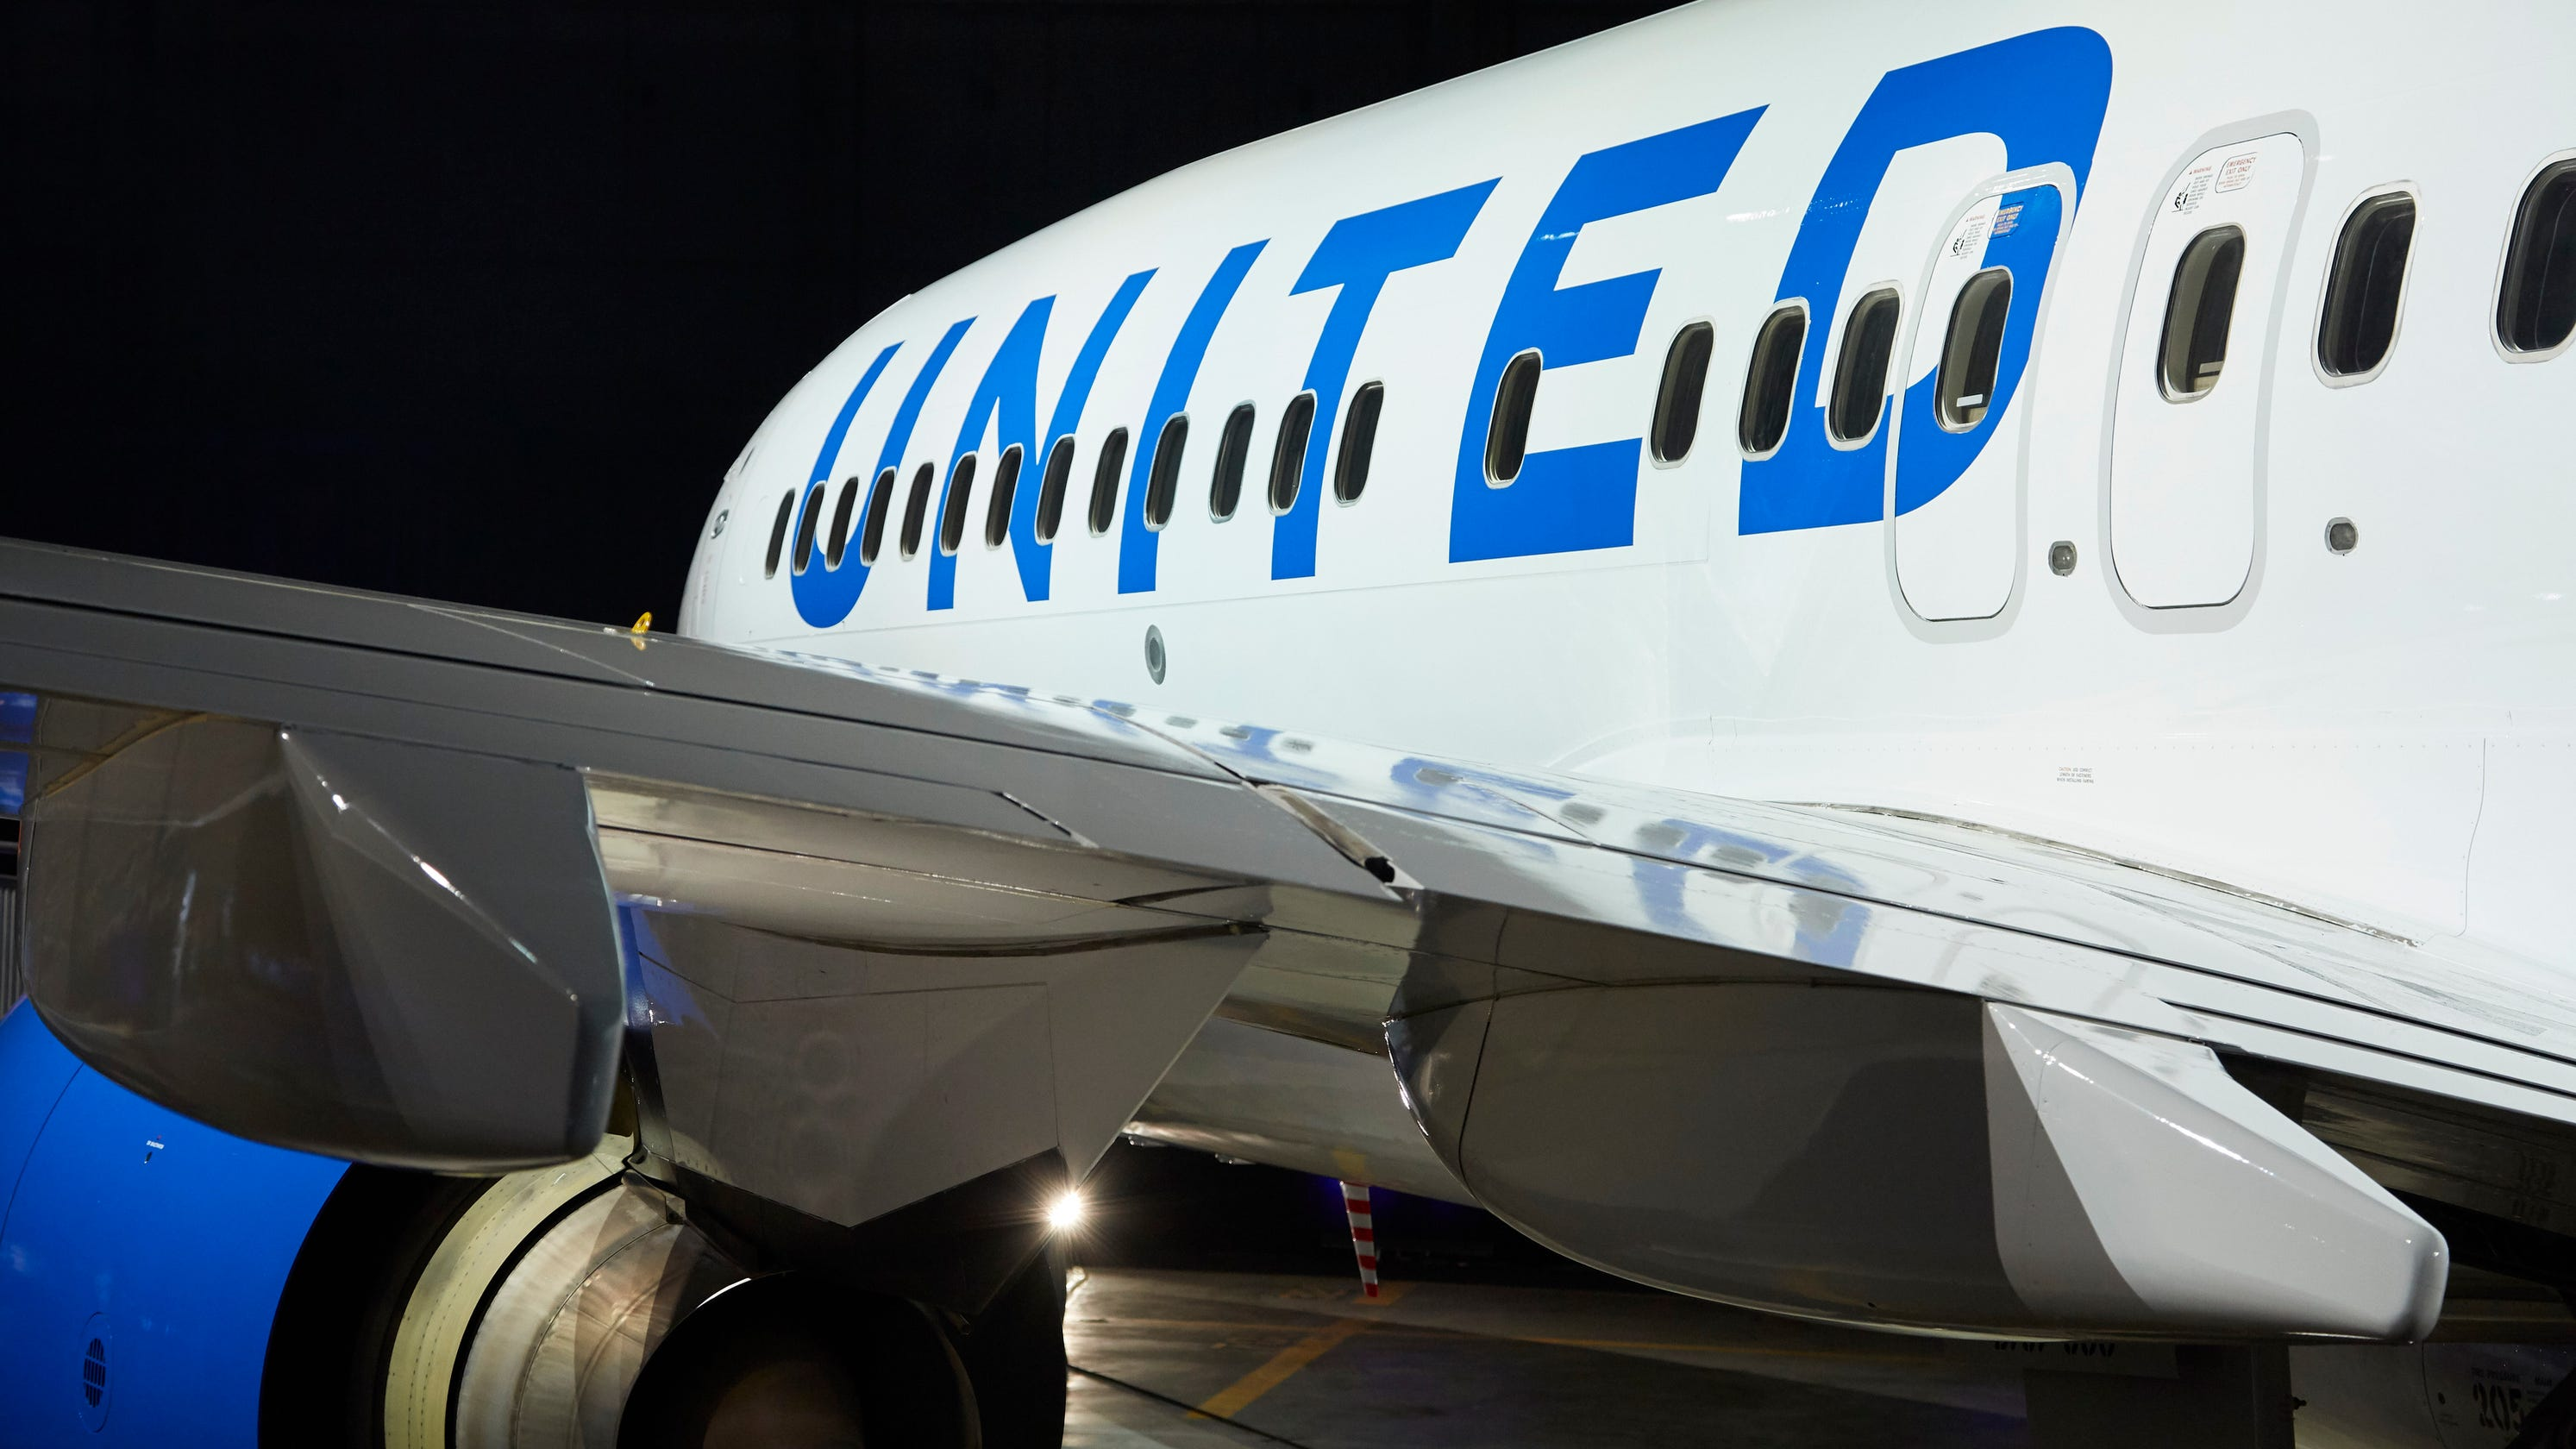 United Airlines is giving passengers 18-22 a discount